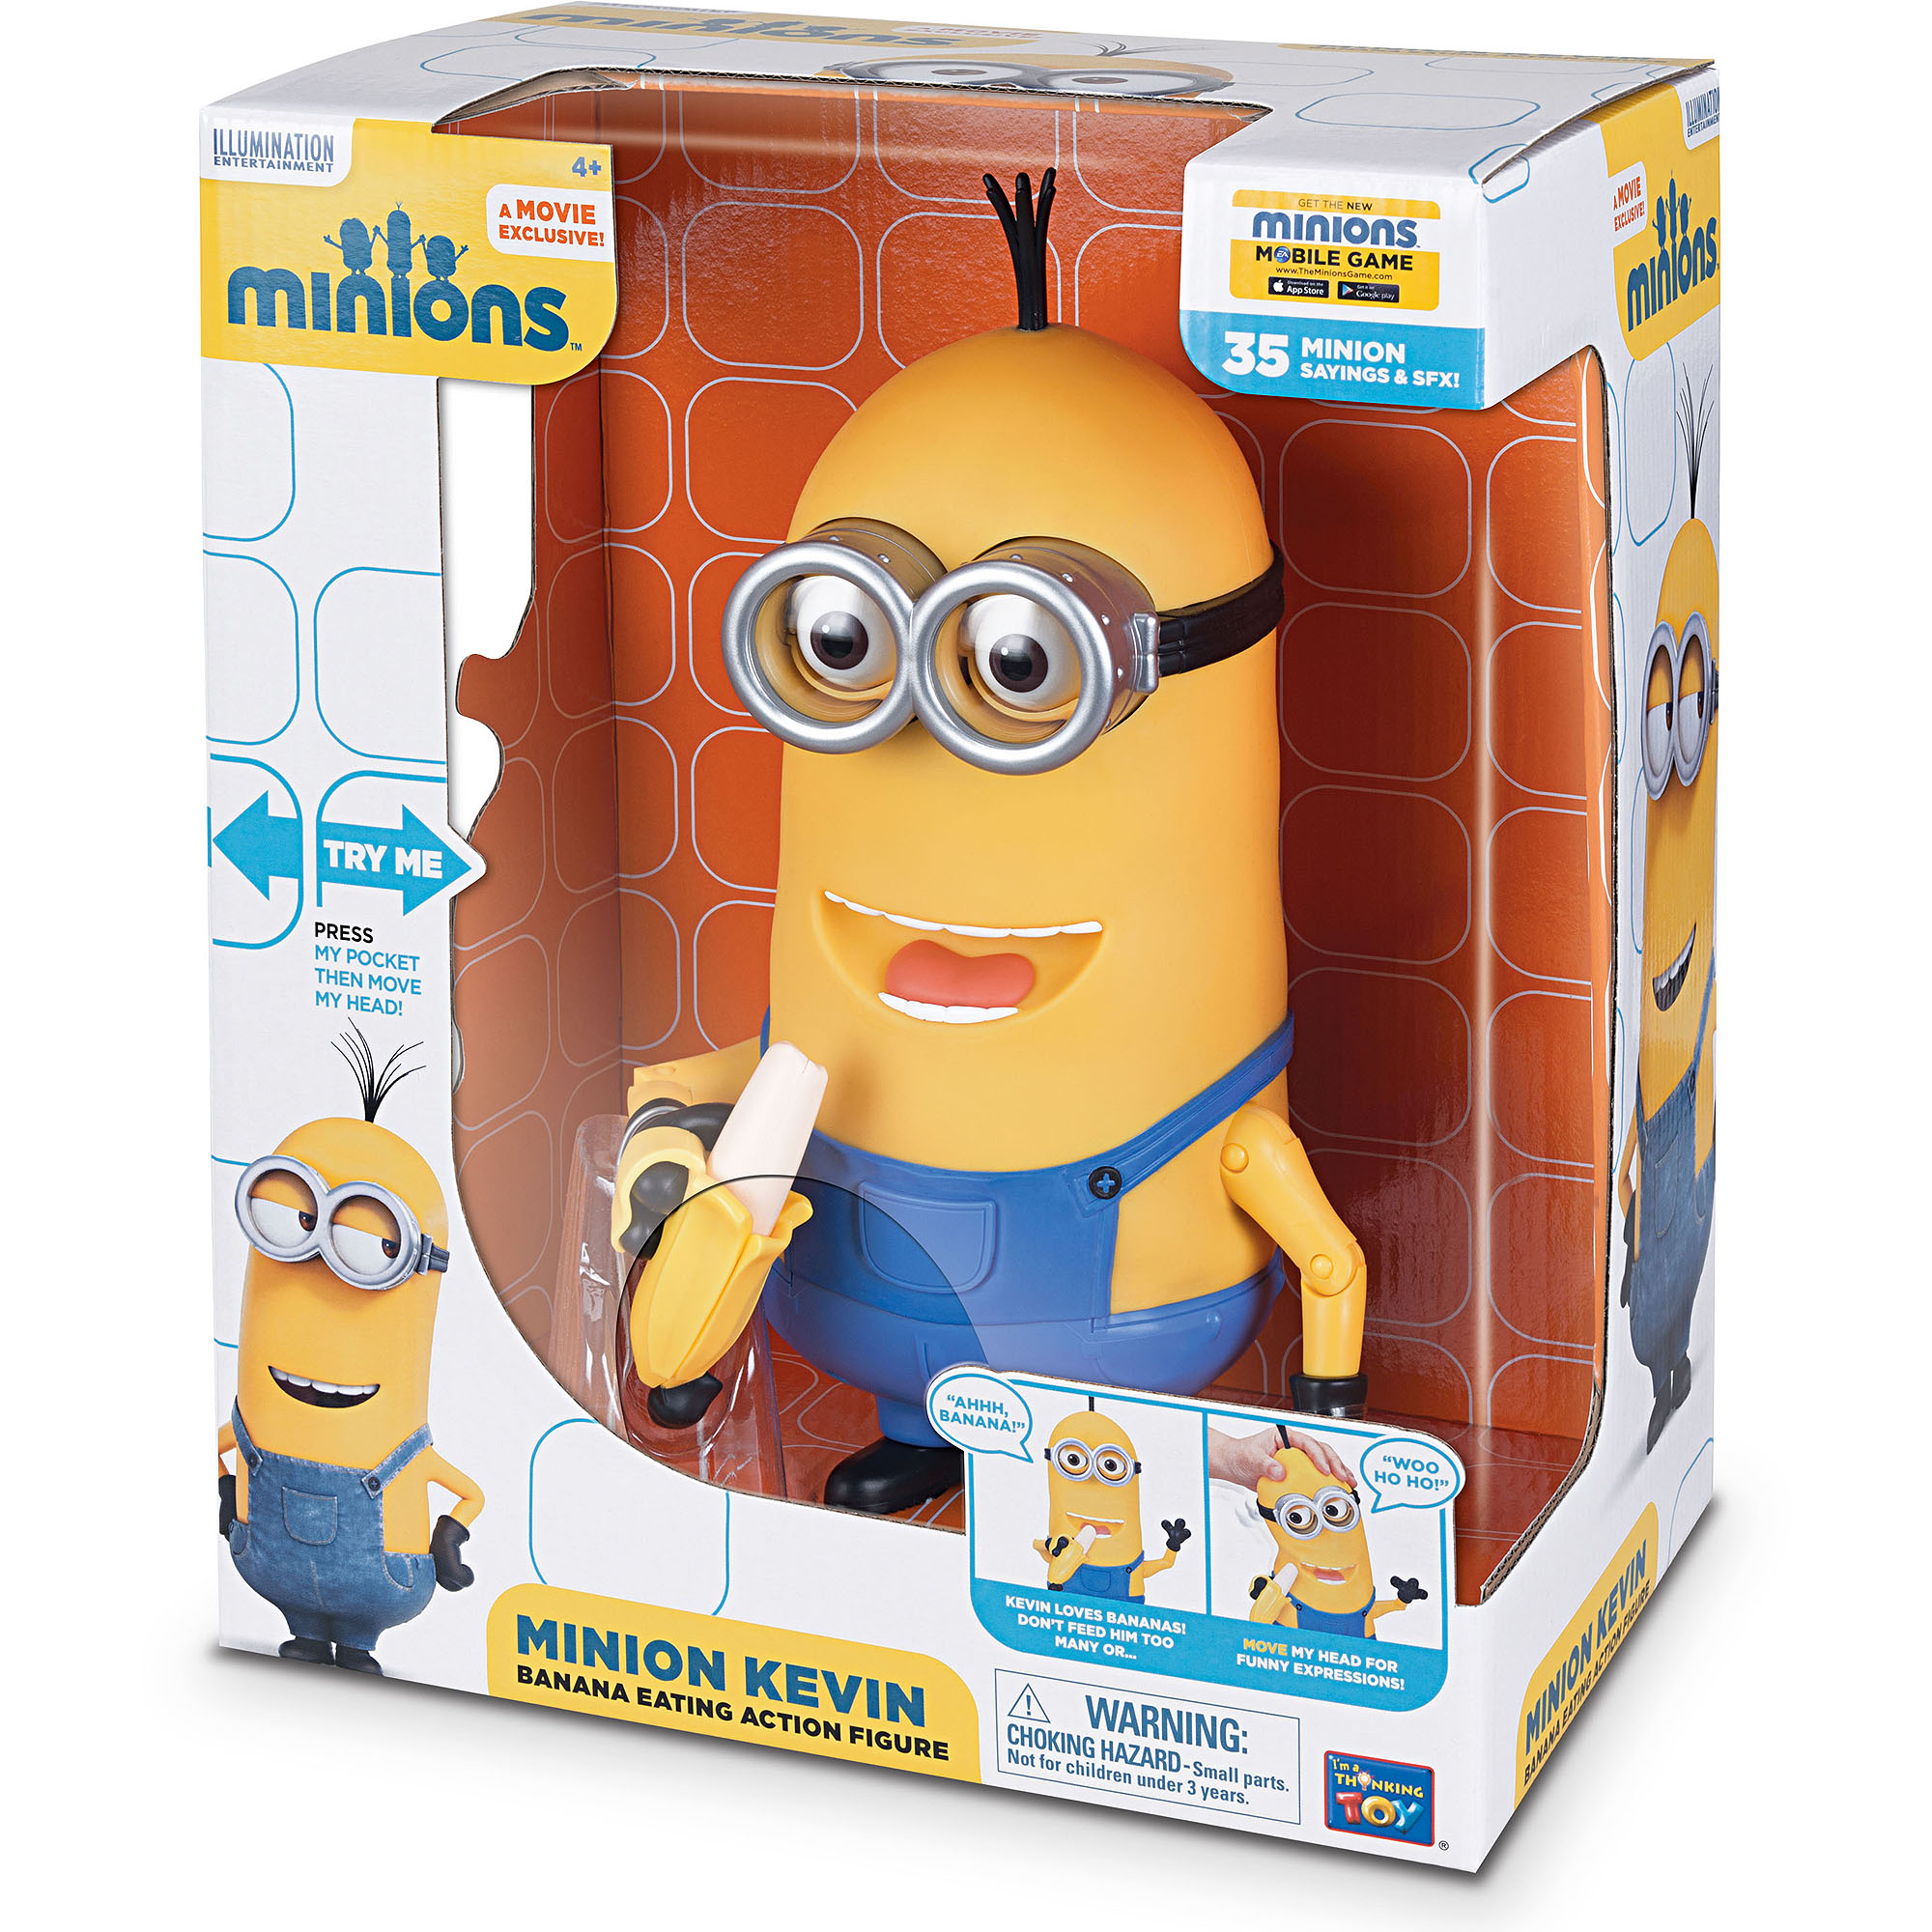 Minion Kevin Banana Eating Action Figure Walmart